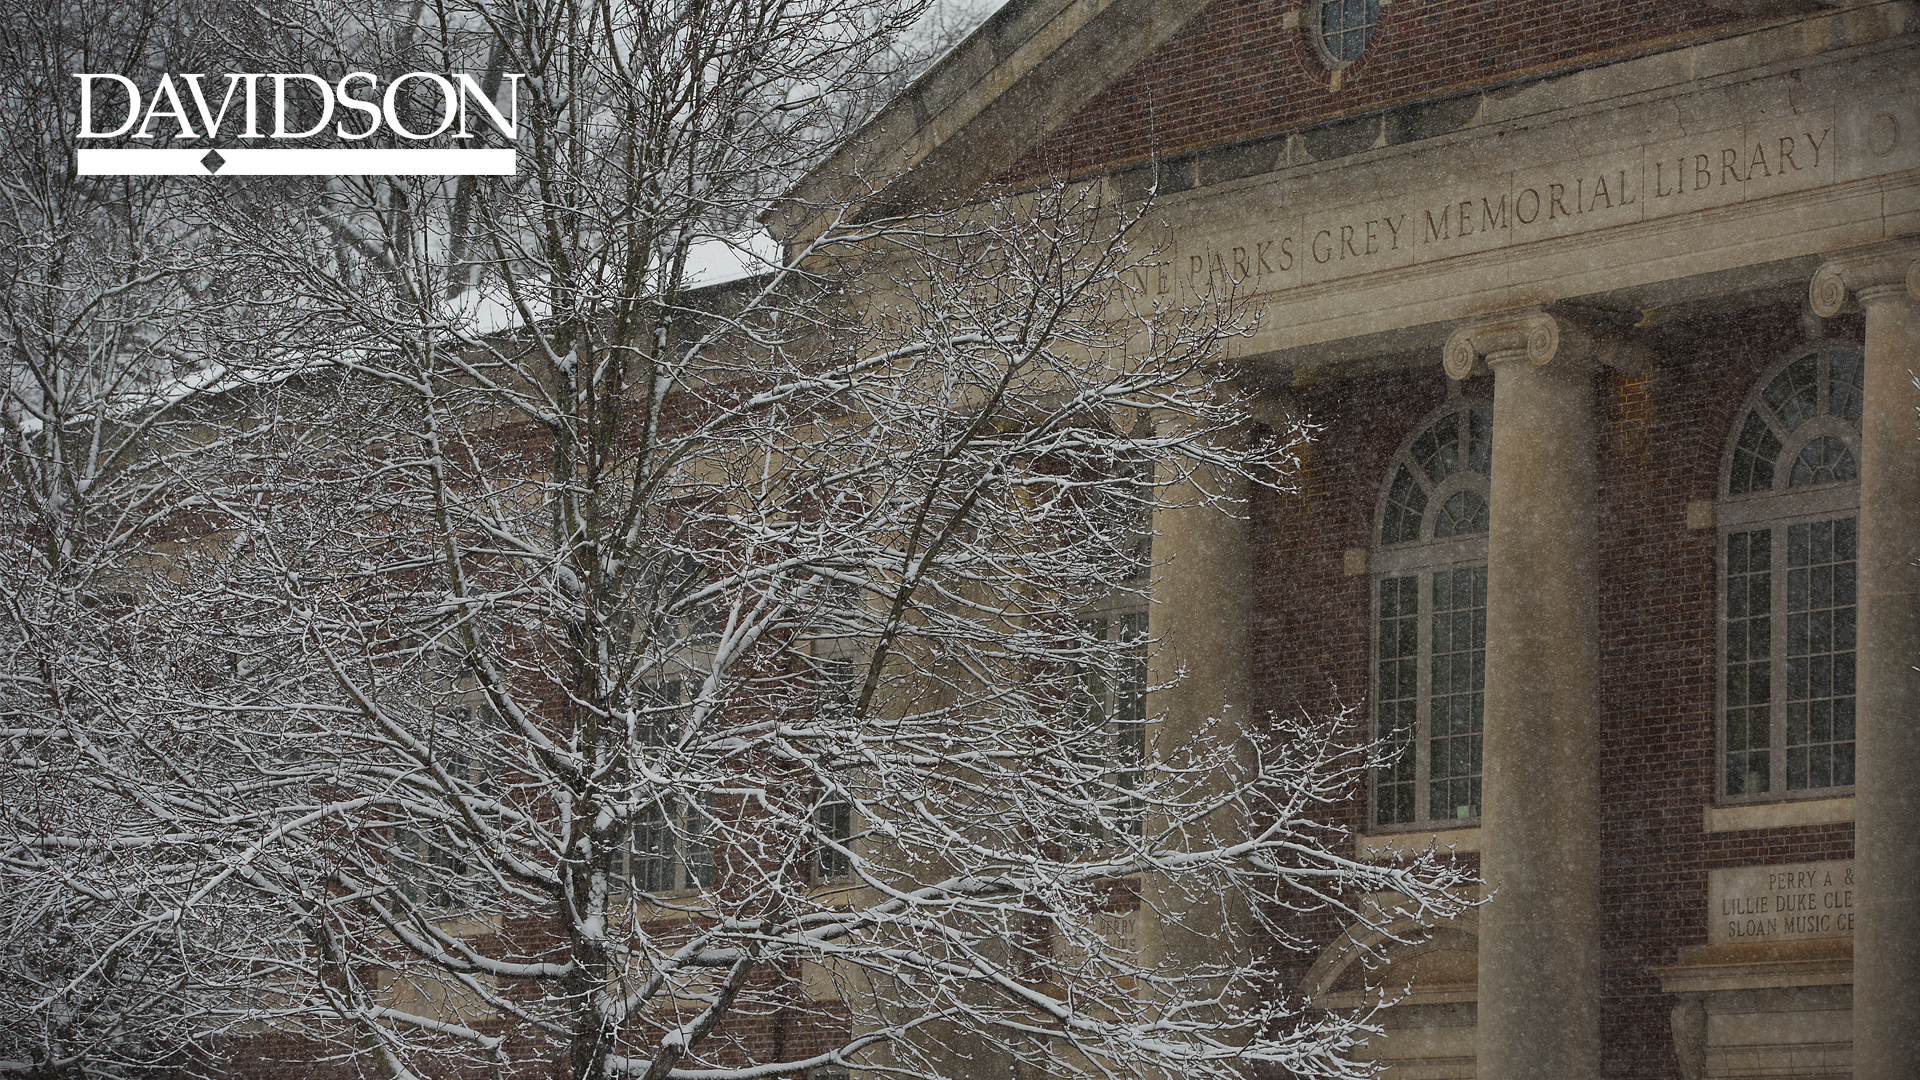 Sloan Music Building with Snow and Davidson logo